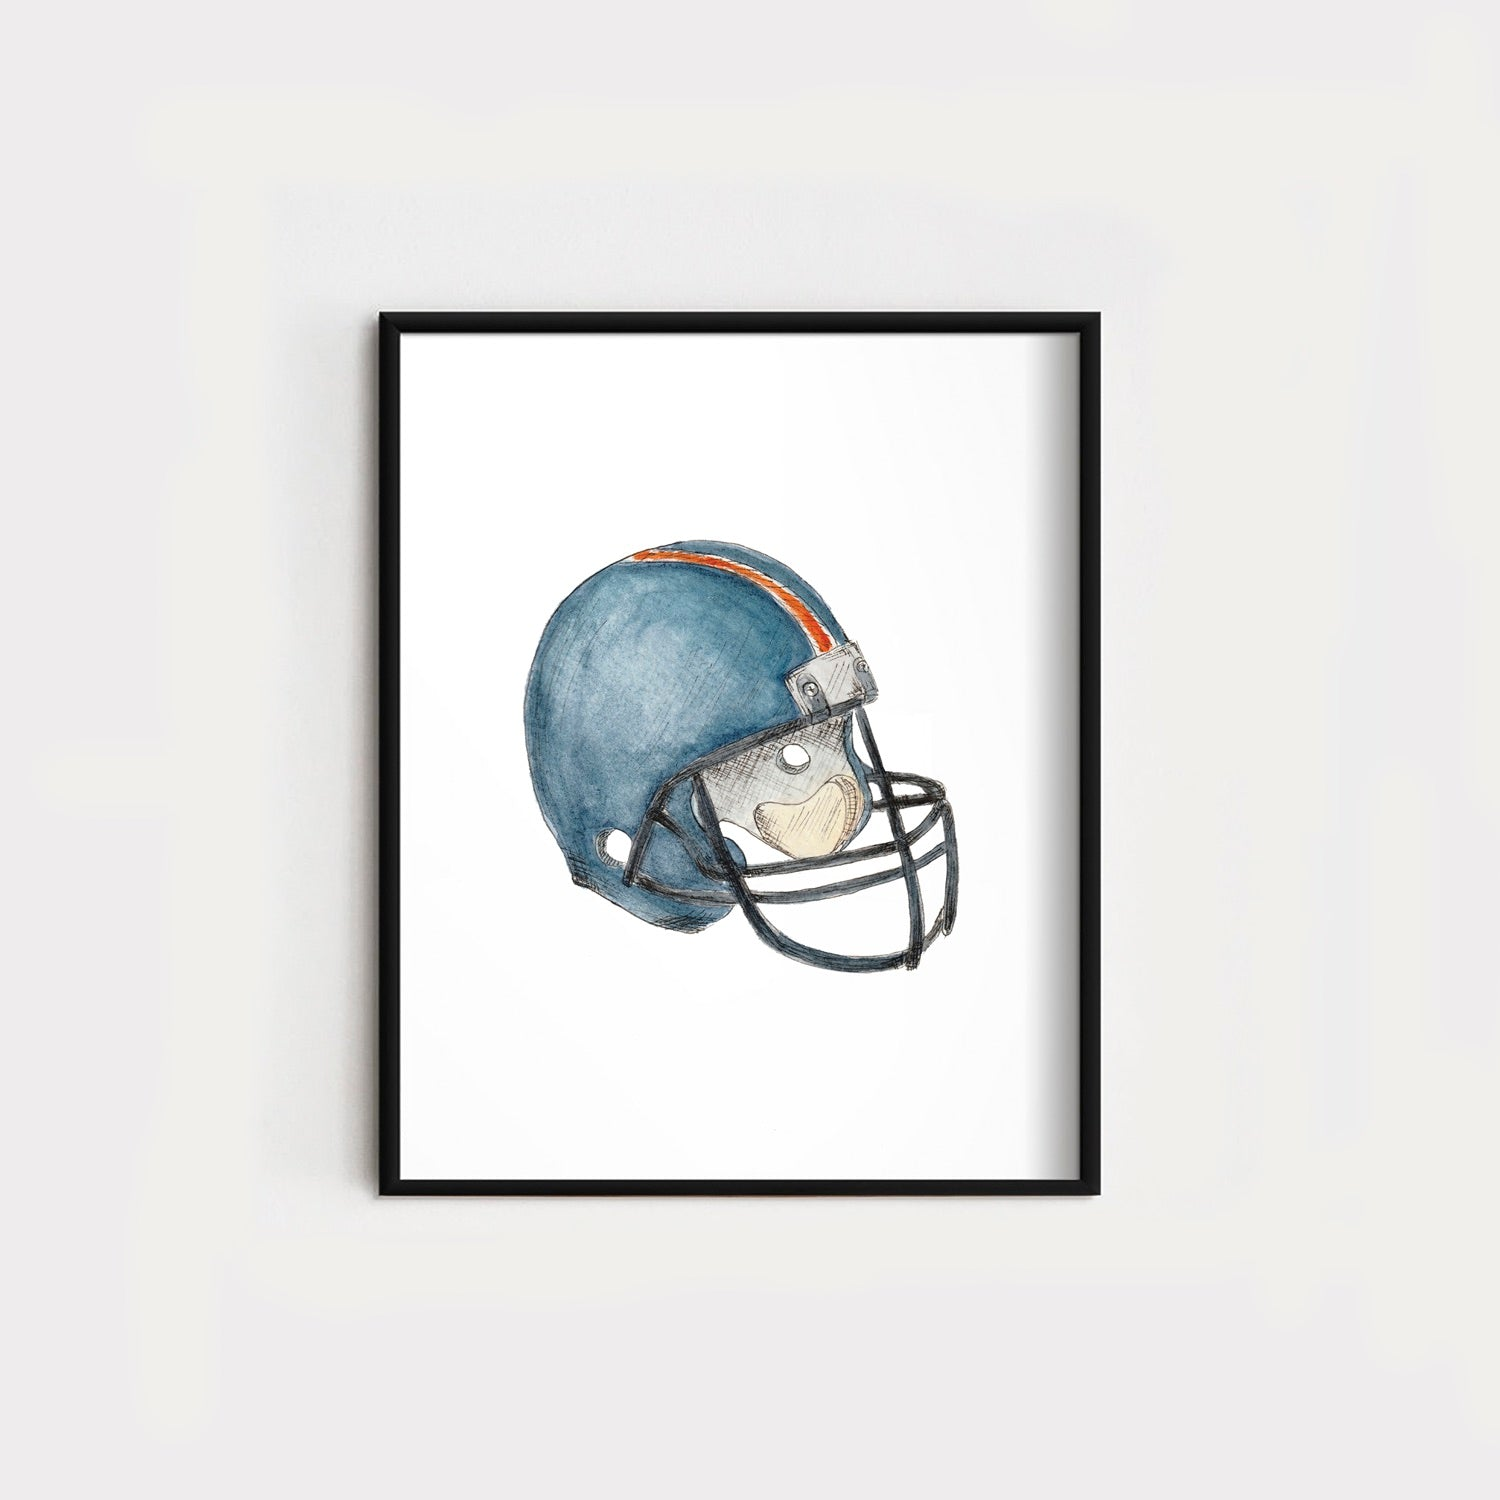 Football Helmet Original